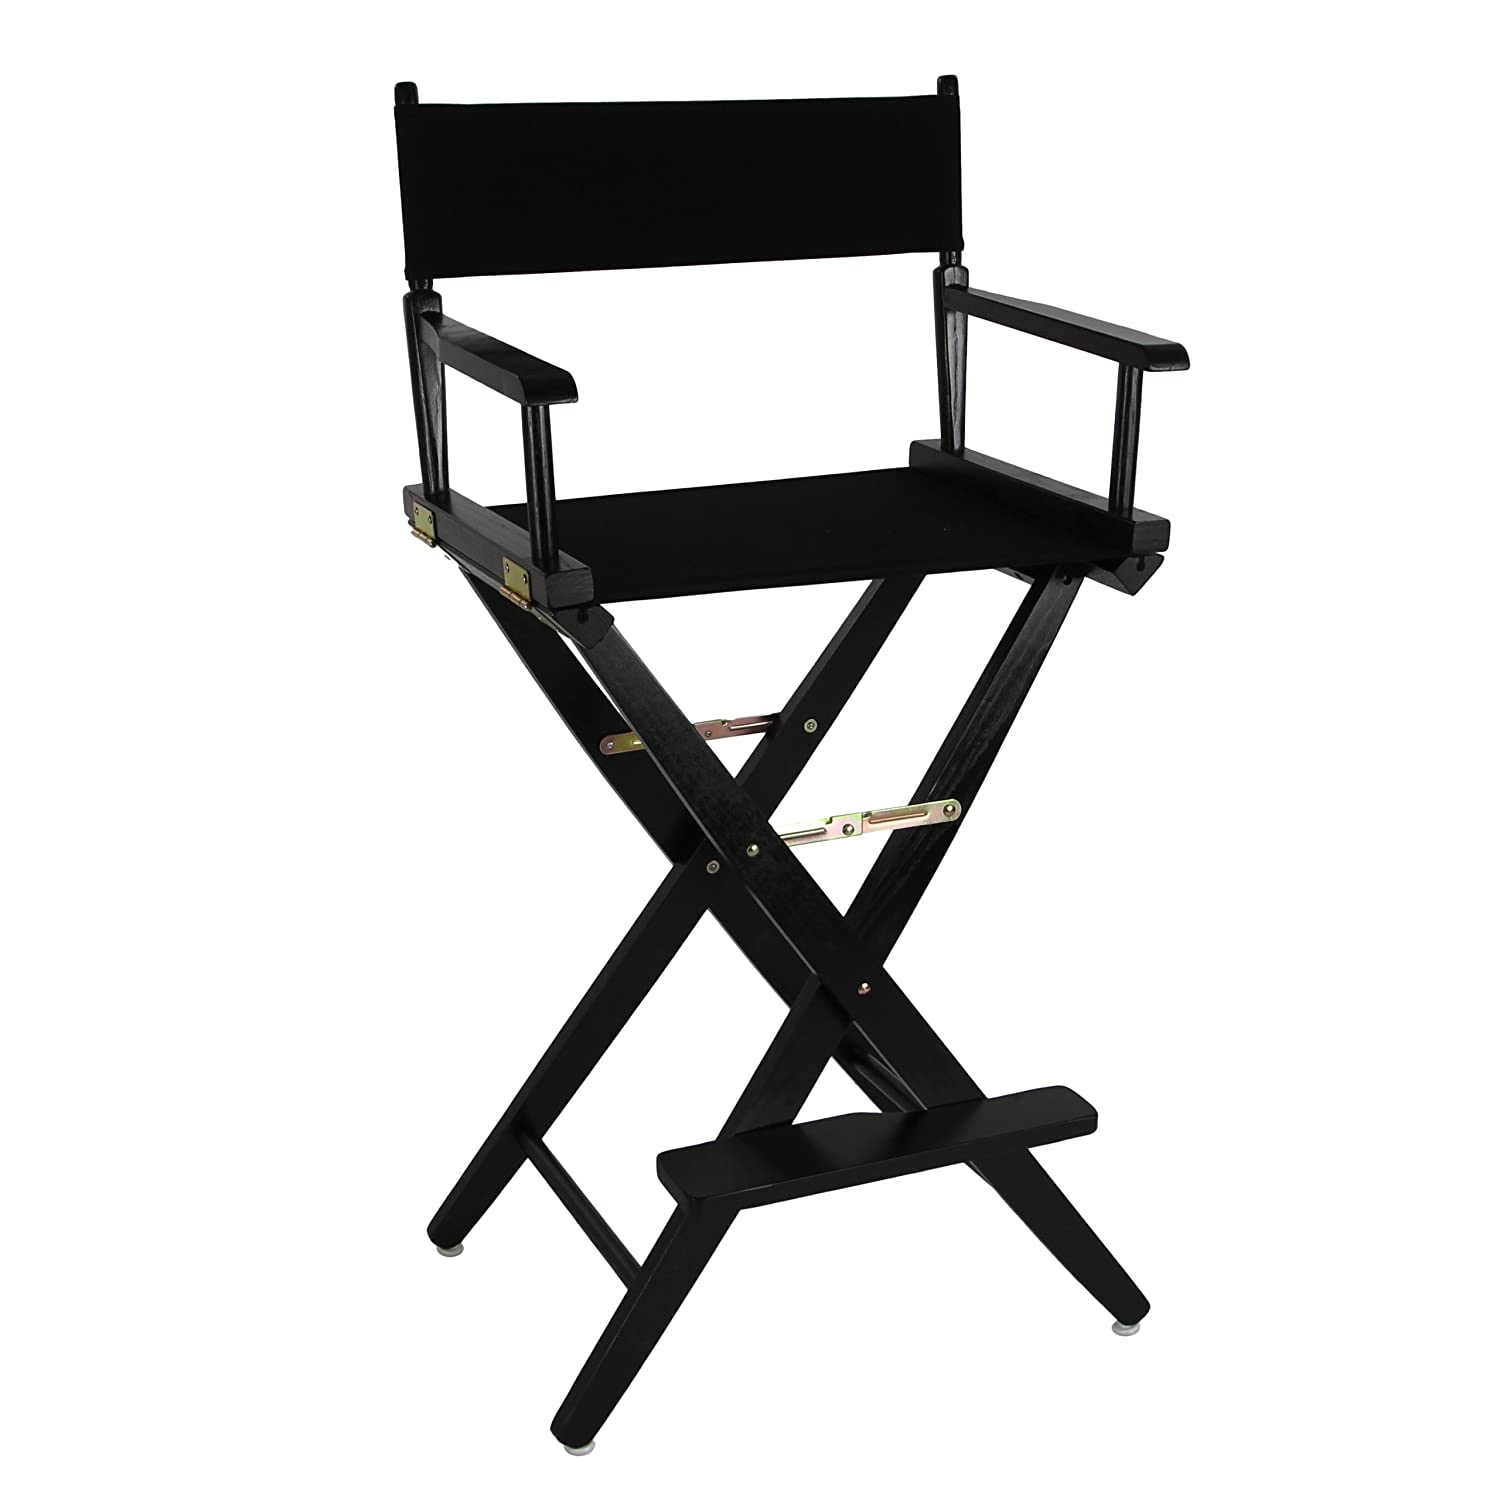 Directors chair png - American Trails Extra Wide Premium 30 Directors Chair Black Frame W Black Color Cover